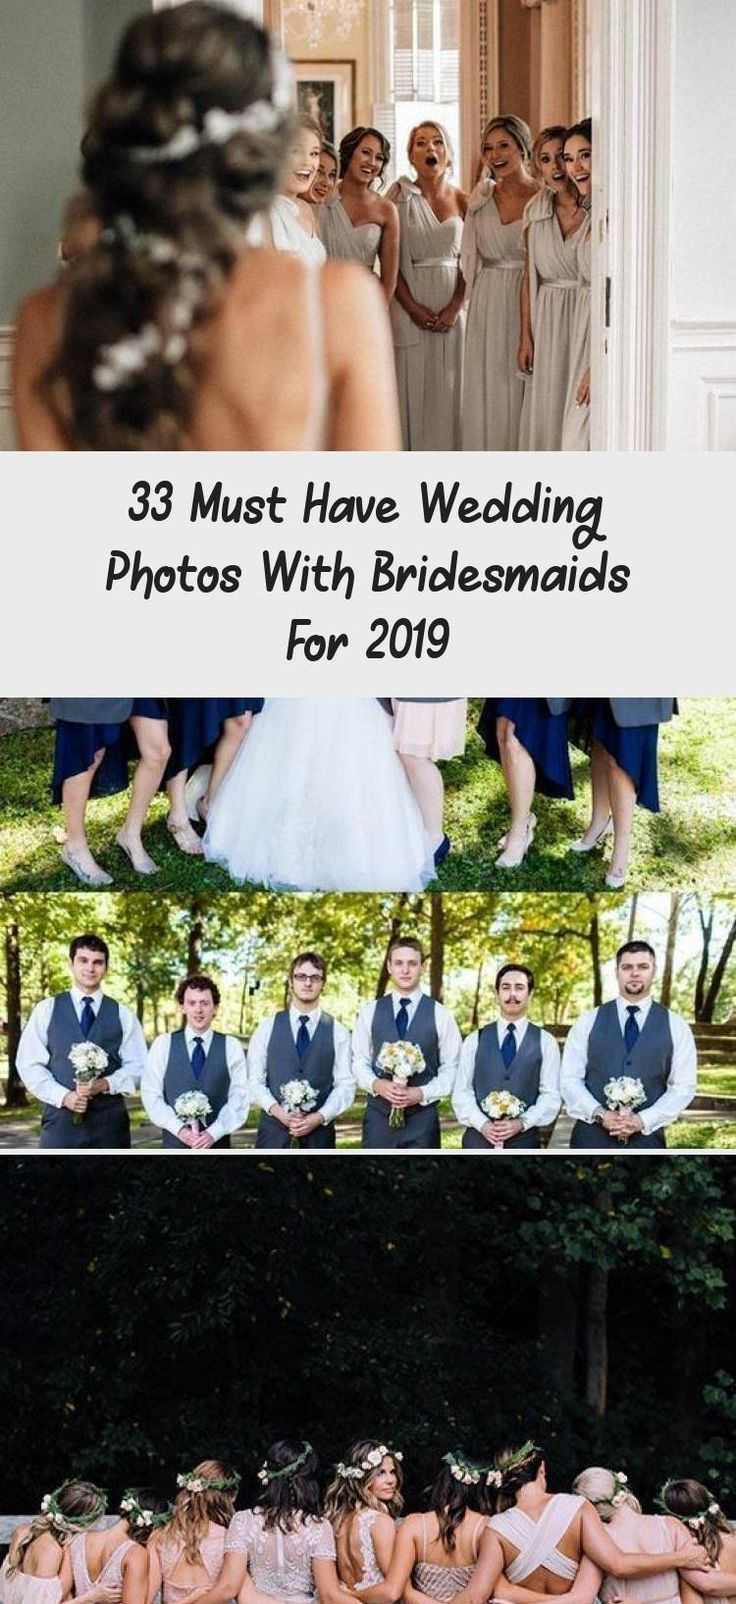 33 Must Have Wedding Photos with Bridesmaids for 2019 #GrayBridesmaidDresses #BridesmaidDressesColors #RusticBridesmaidDresses #OrangeBridesmaidDresses #BridesmaidDressesLong